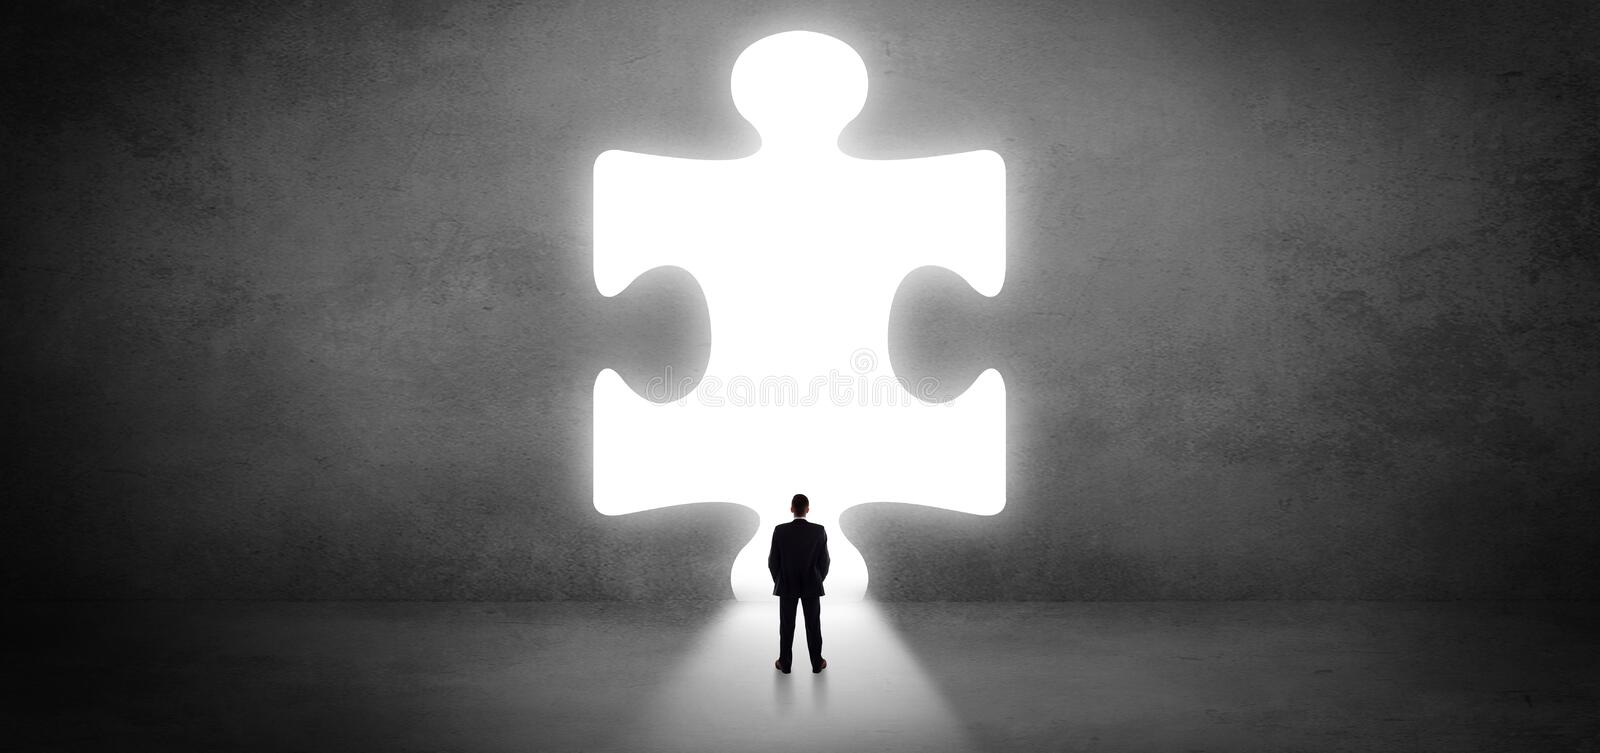 Businessman standing in front of a big puzzle piece royalty free stock images